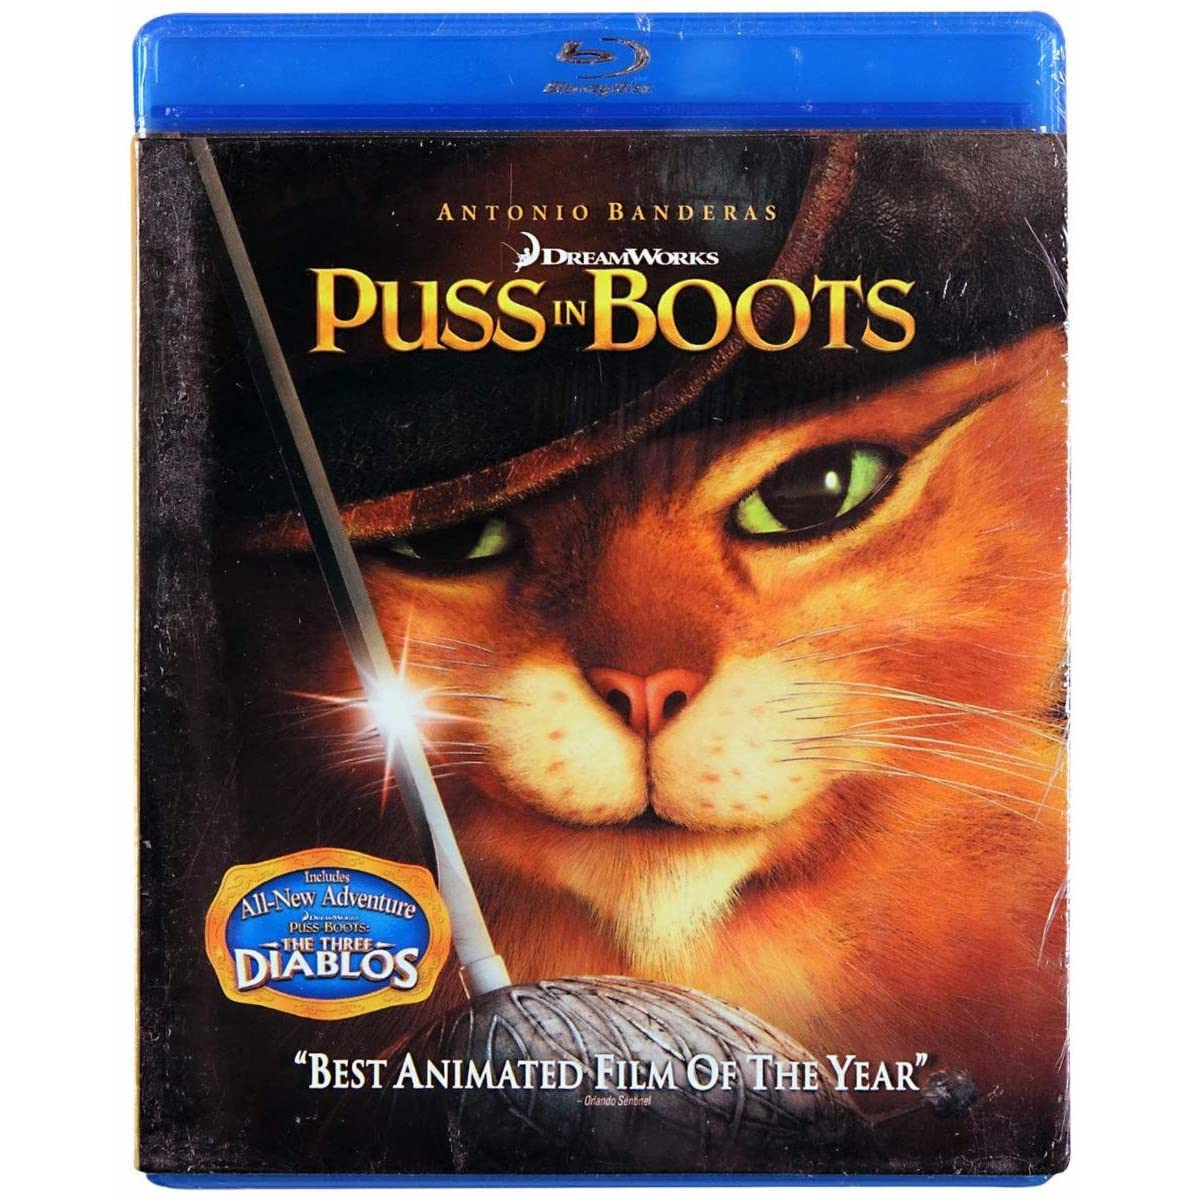 Puss in Boots (2012)